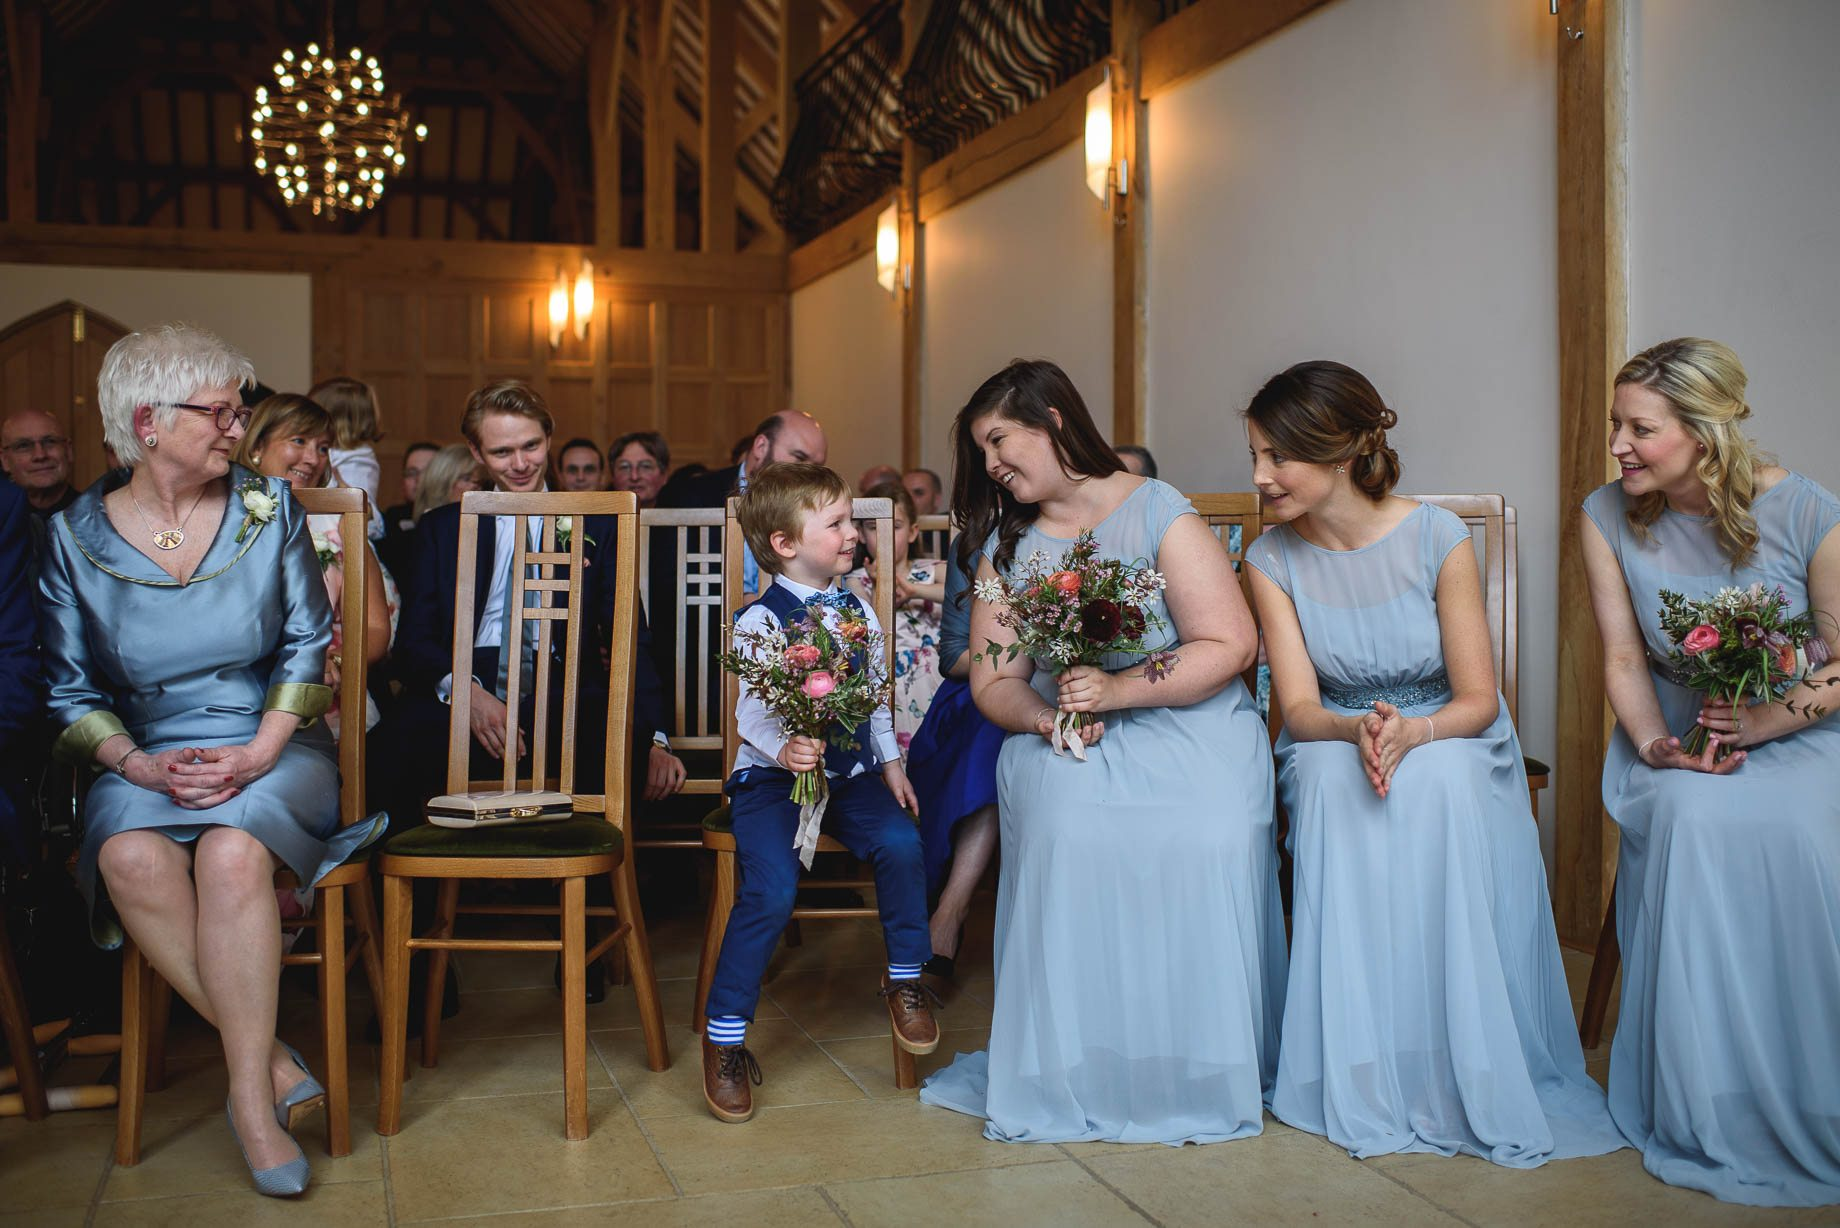 Rivervale Barn wedding photography by Guy Collier - Claire and Simon (61 of 133)